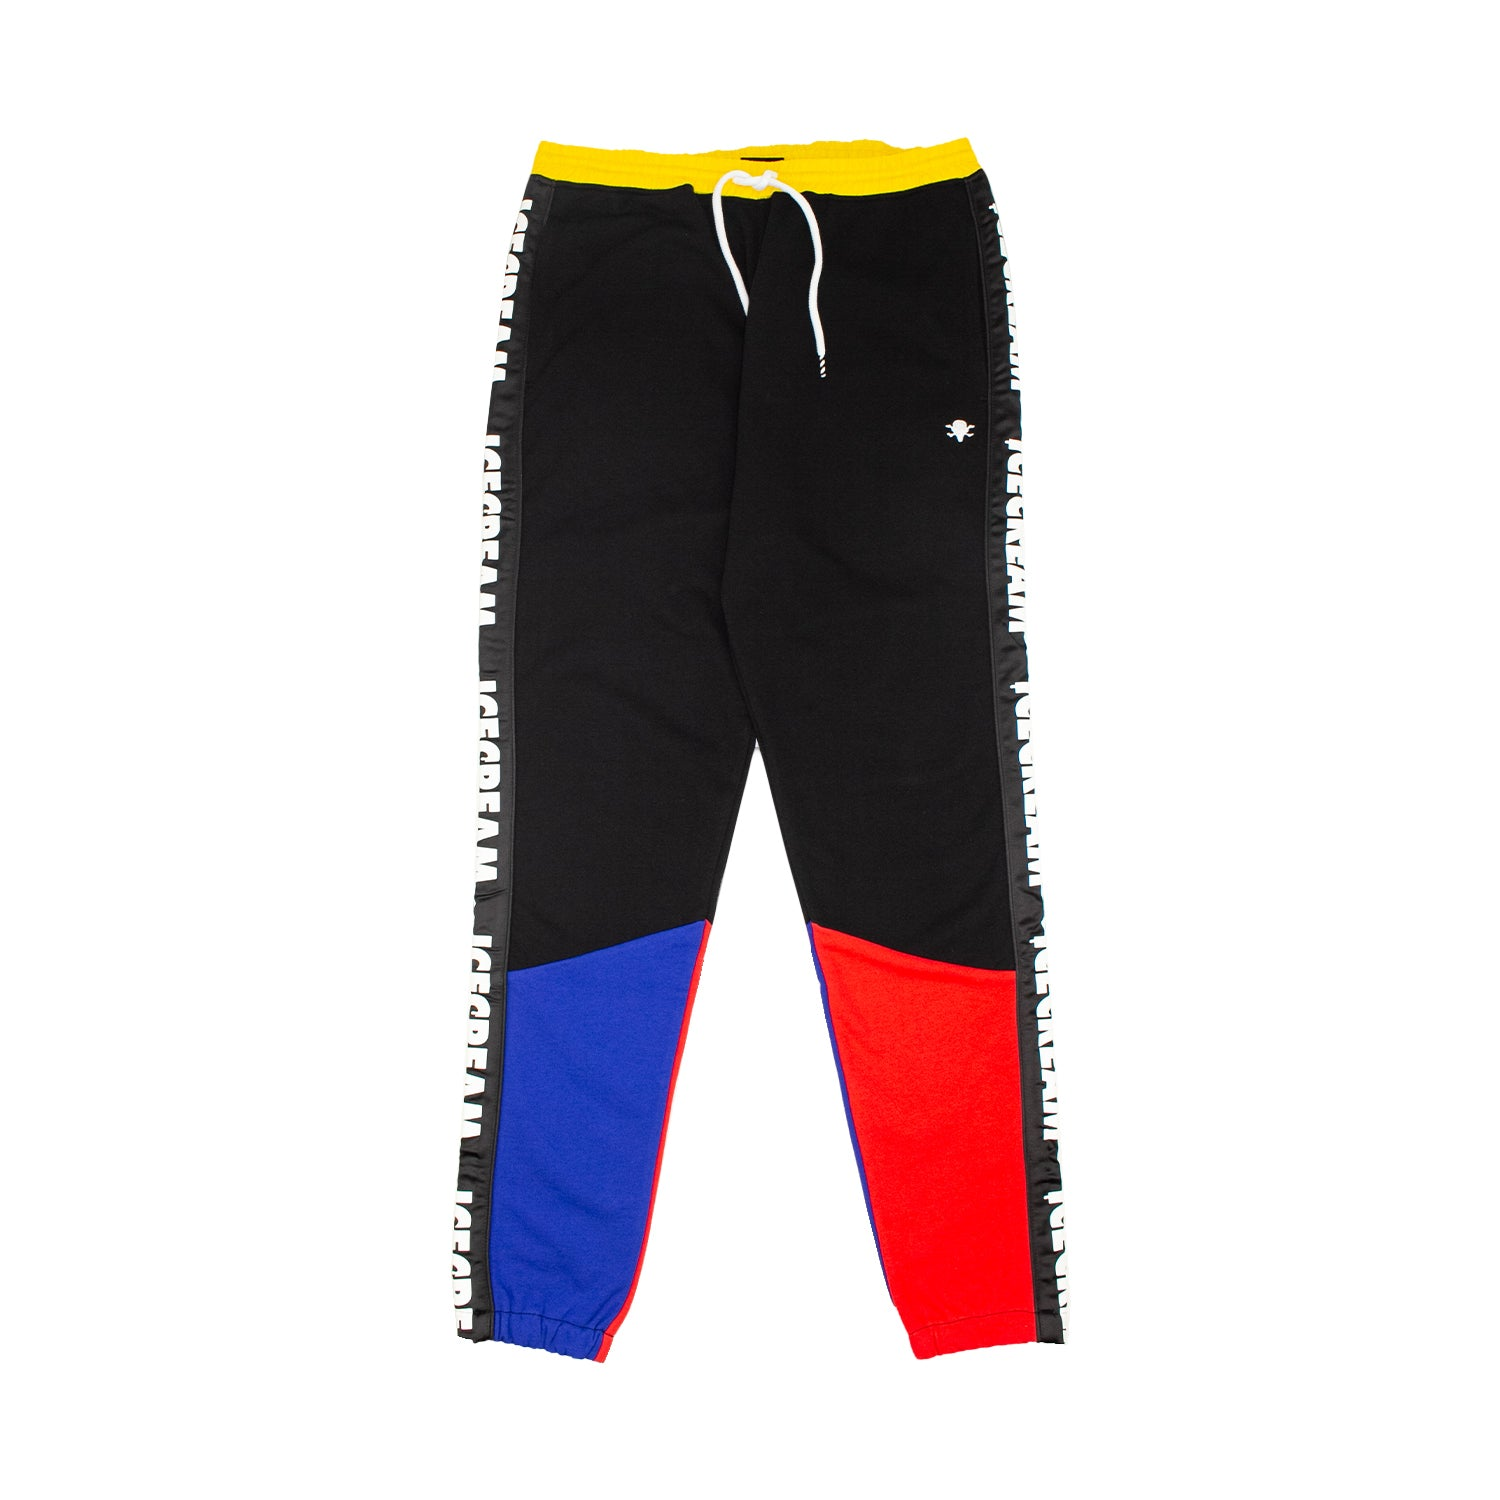 THE FACTION SWEATPANT